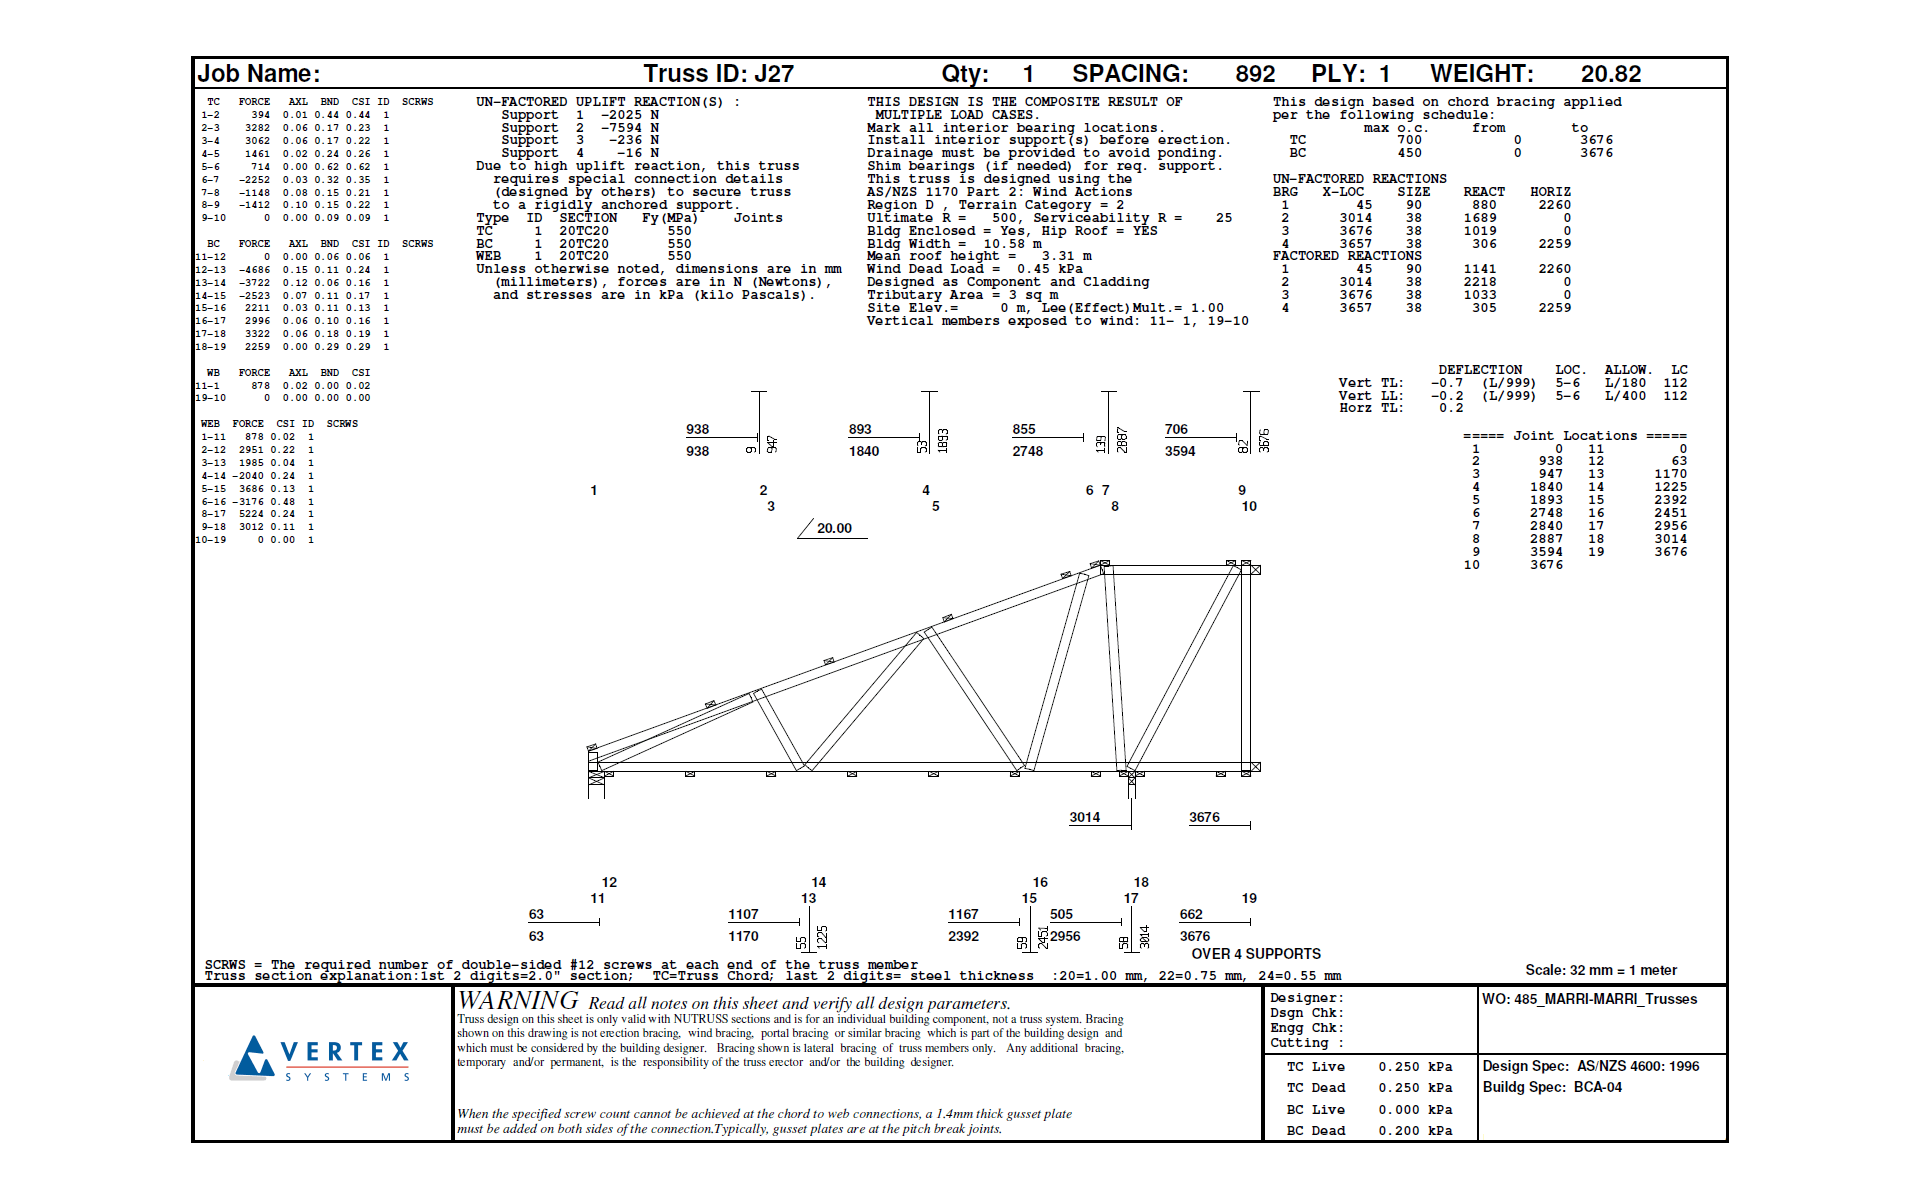 Vertex BD Cold-Formed Steel Truss